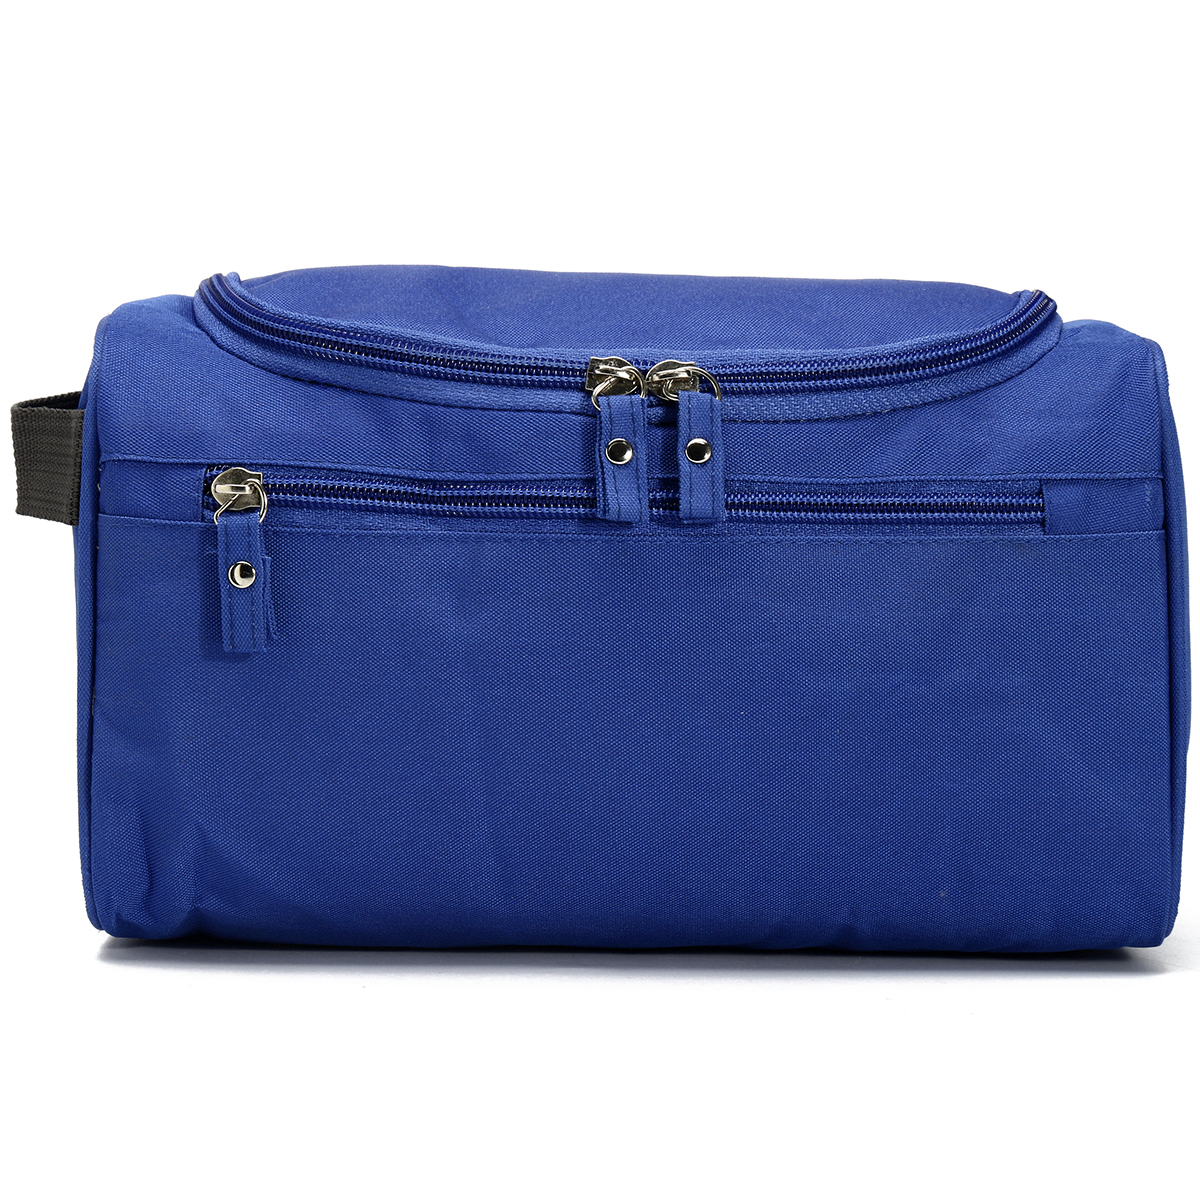 Men-039-s-Protable-Hanging-Travel-Toiletry-Kit-Wash-Bag-Shaving-Case-Cosmetic-Bags